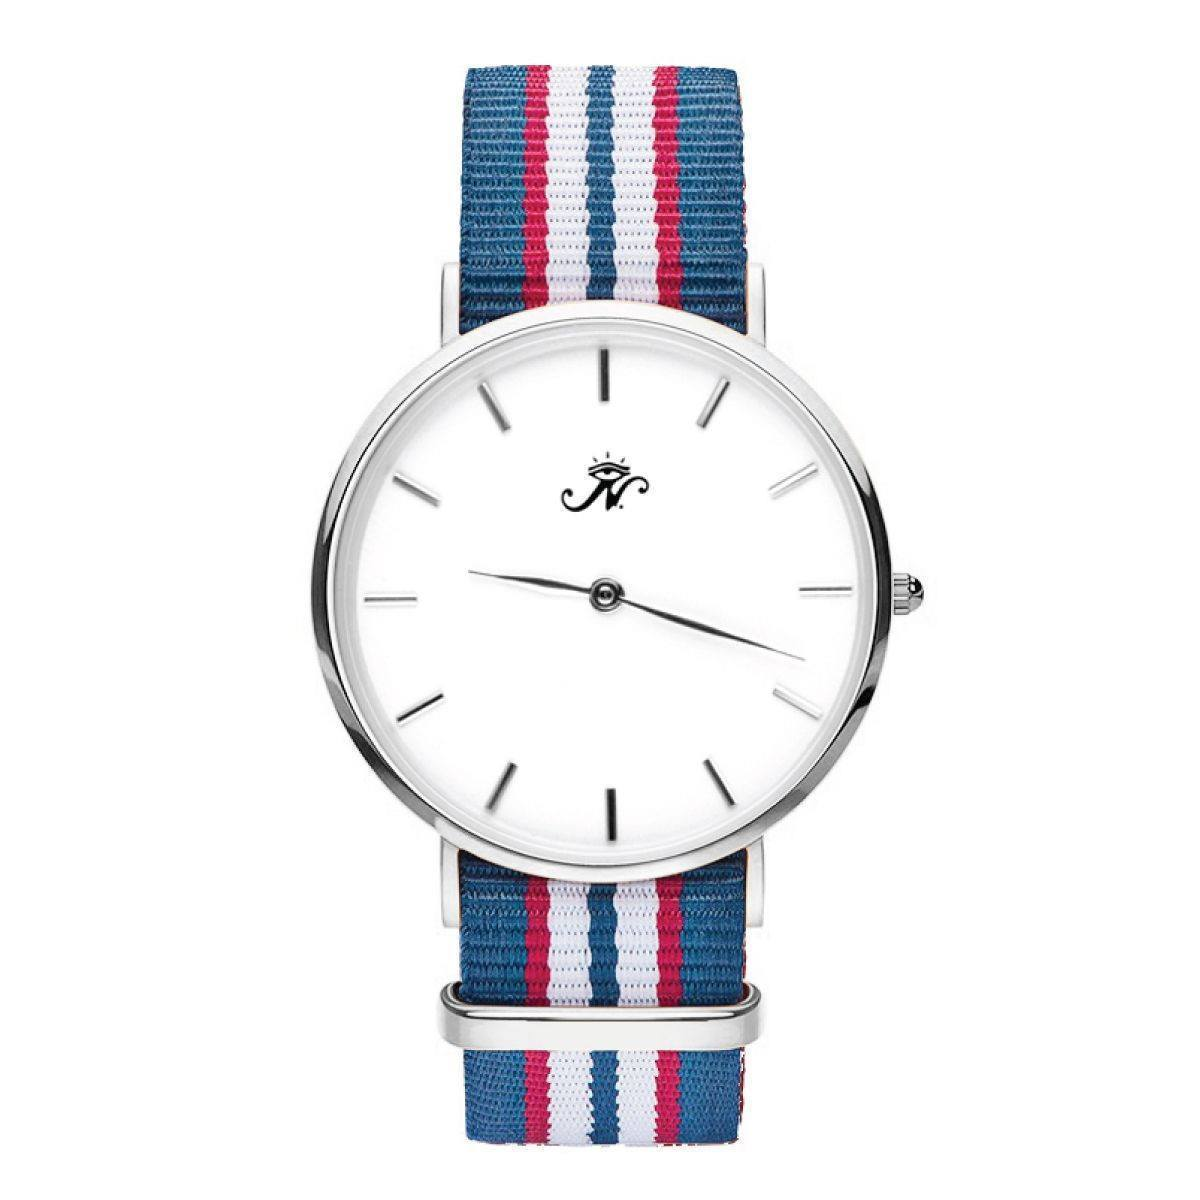 Runnymede - Silver Timepiece with NATO Strap